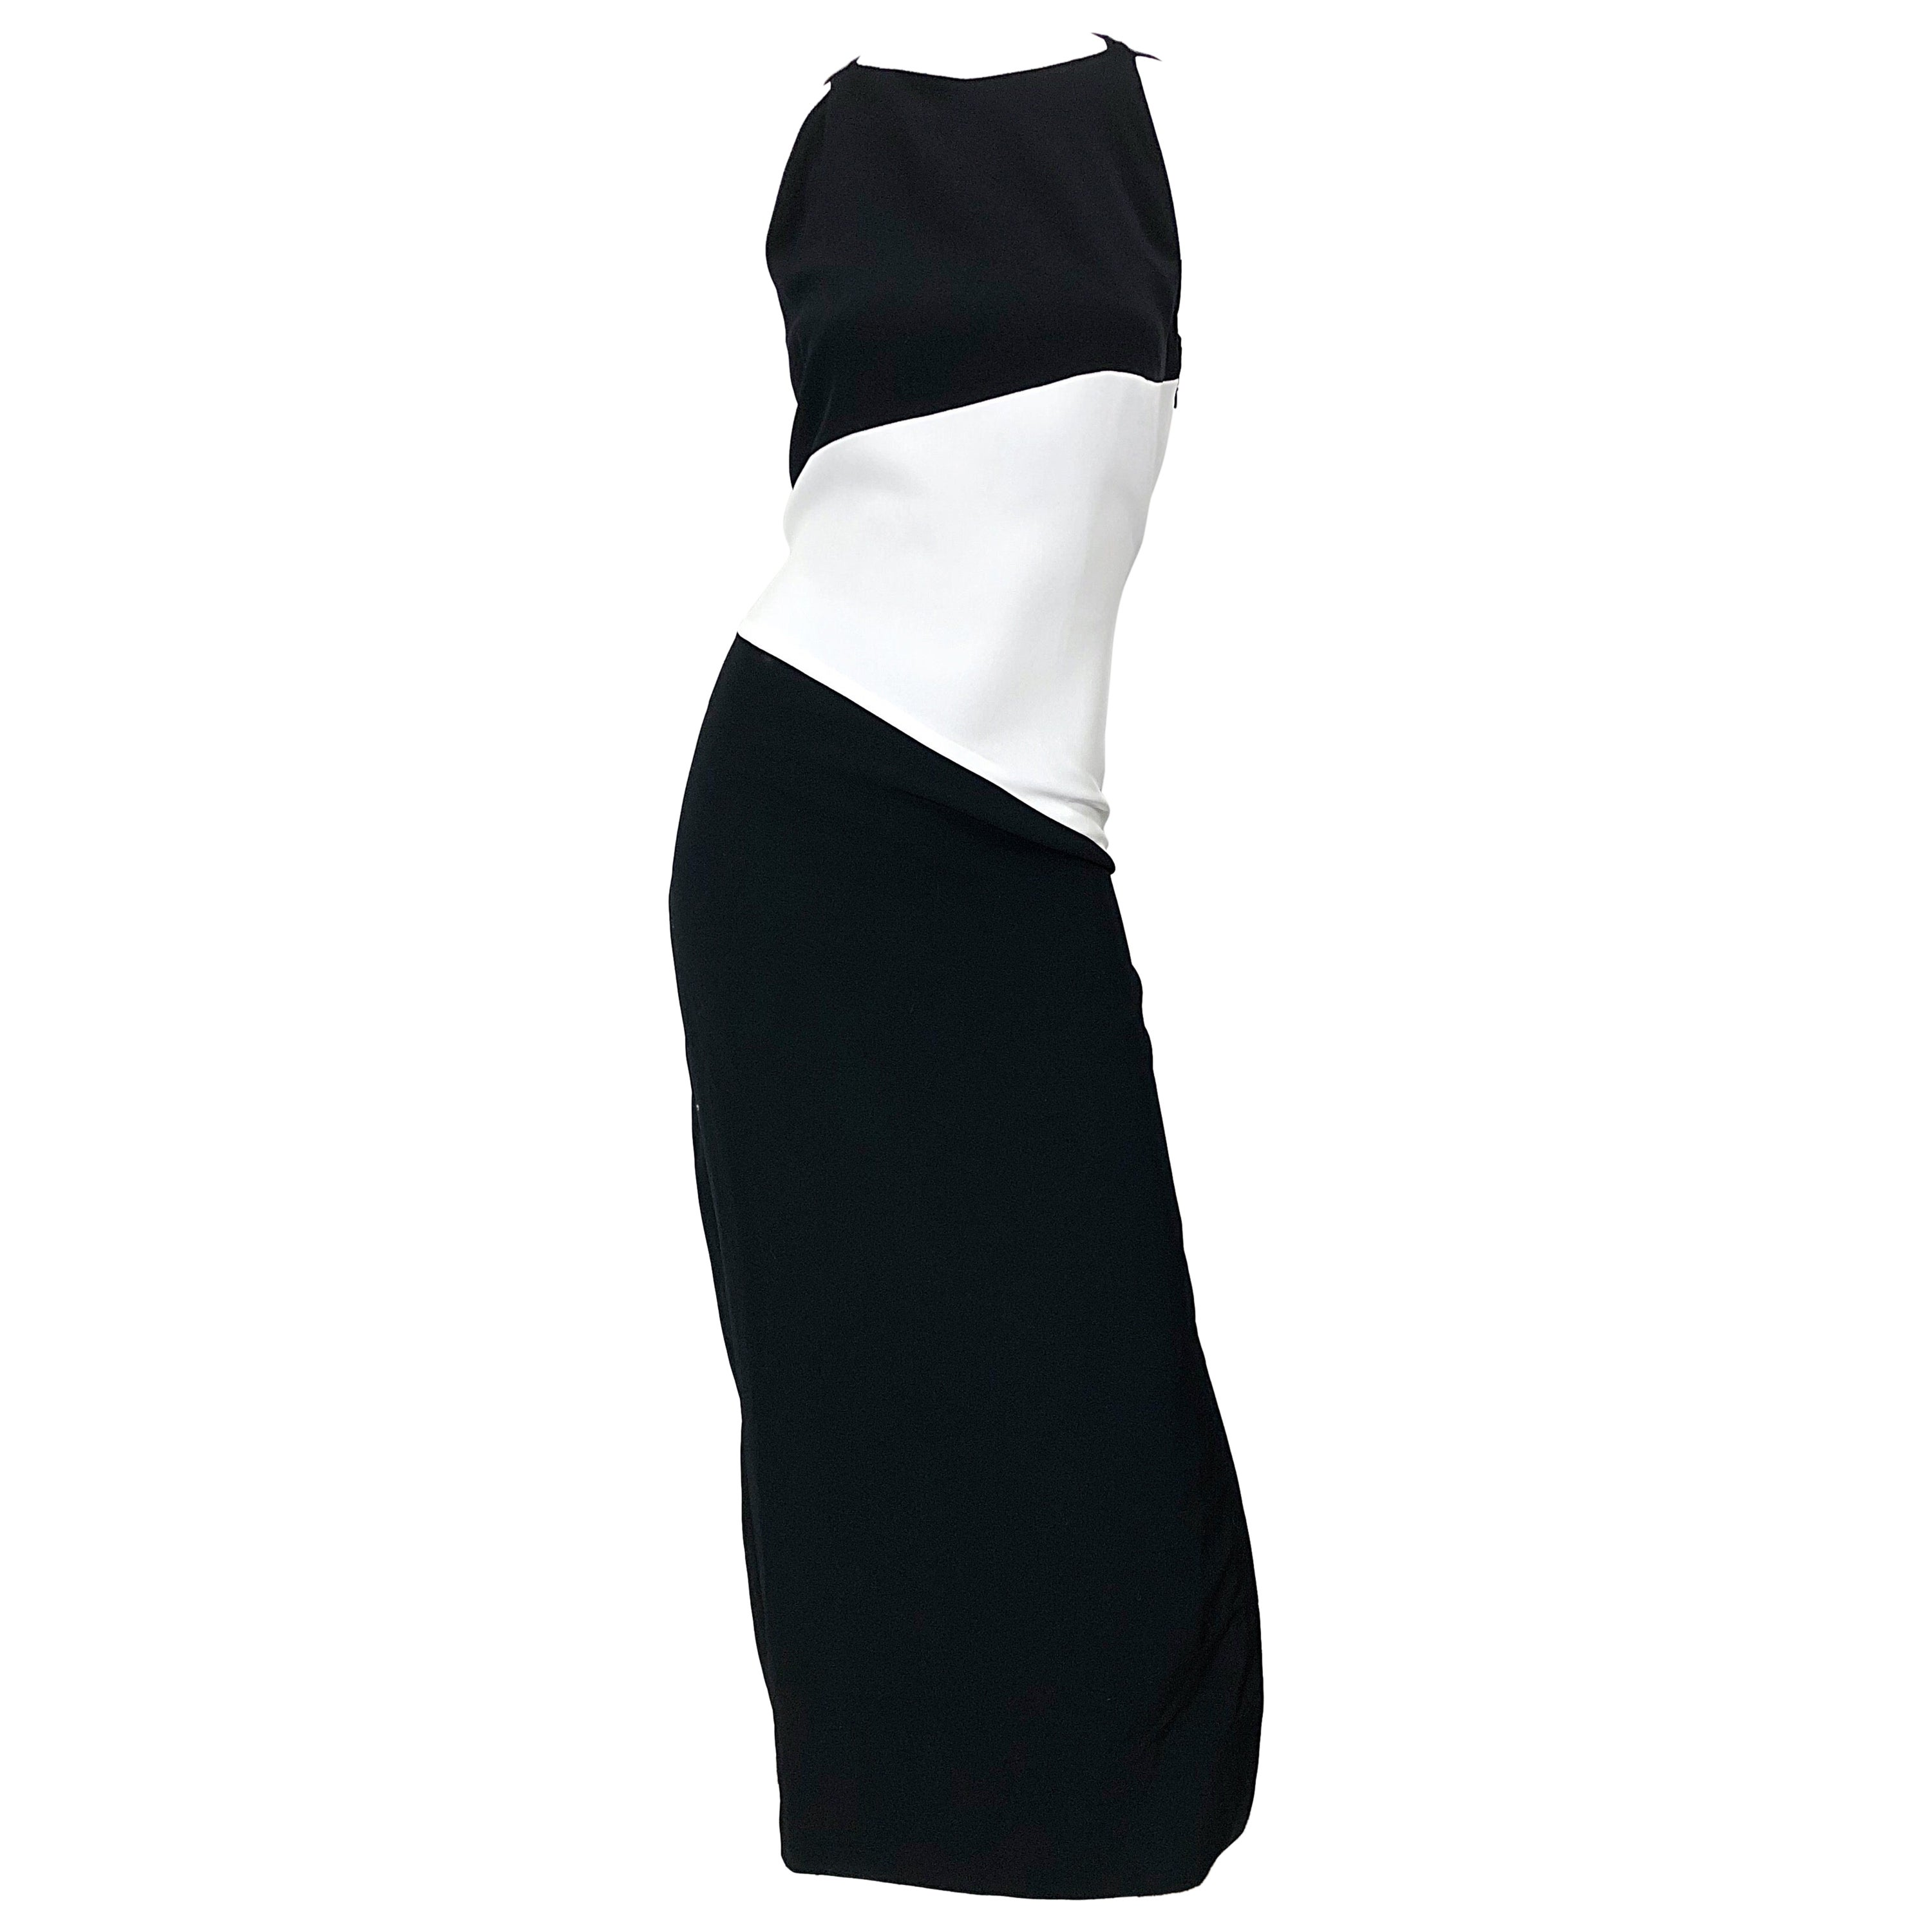 NWT Vintage Bob Mackie Size 8 Black and White Color Block Sleeveless Gown Dress